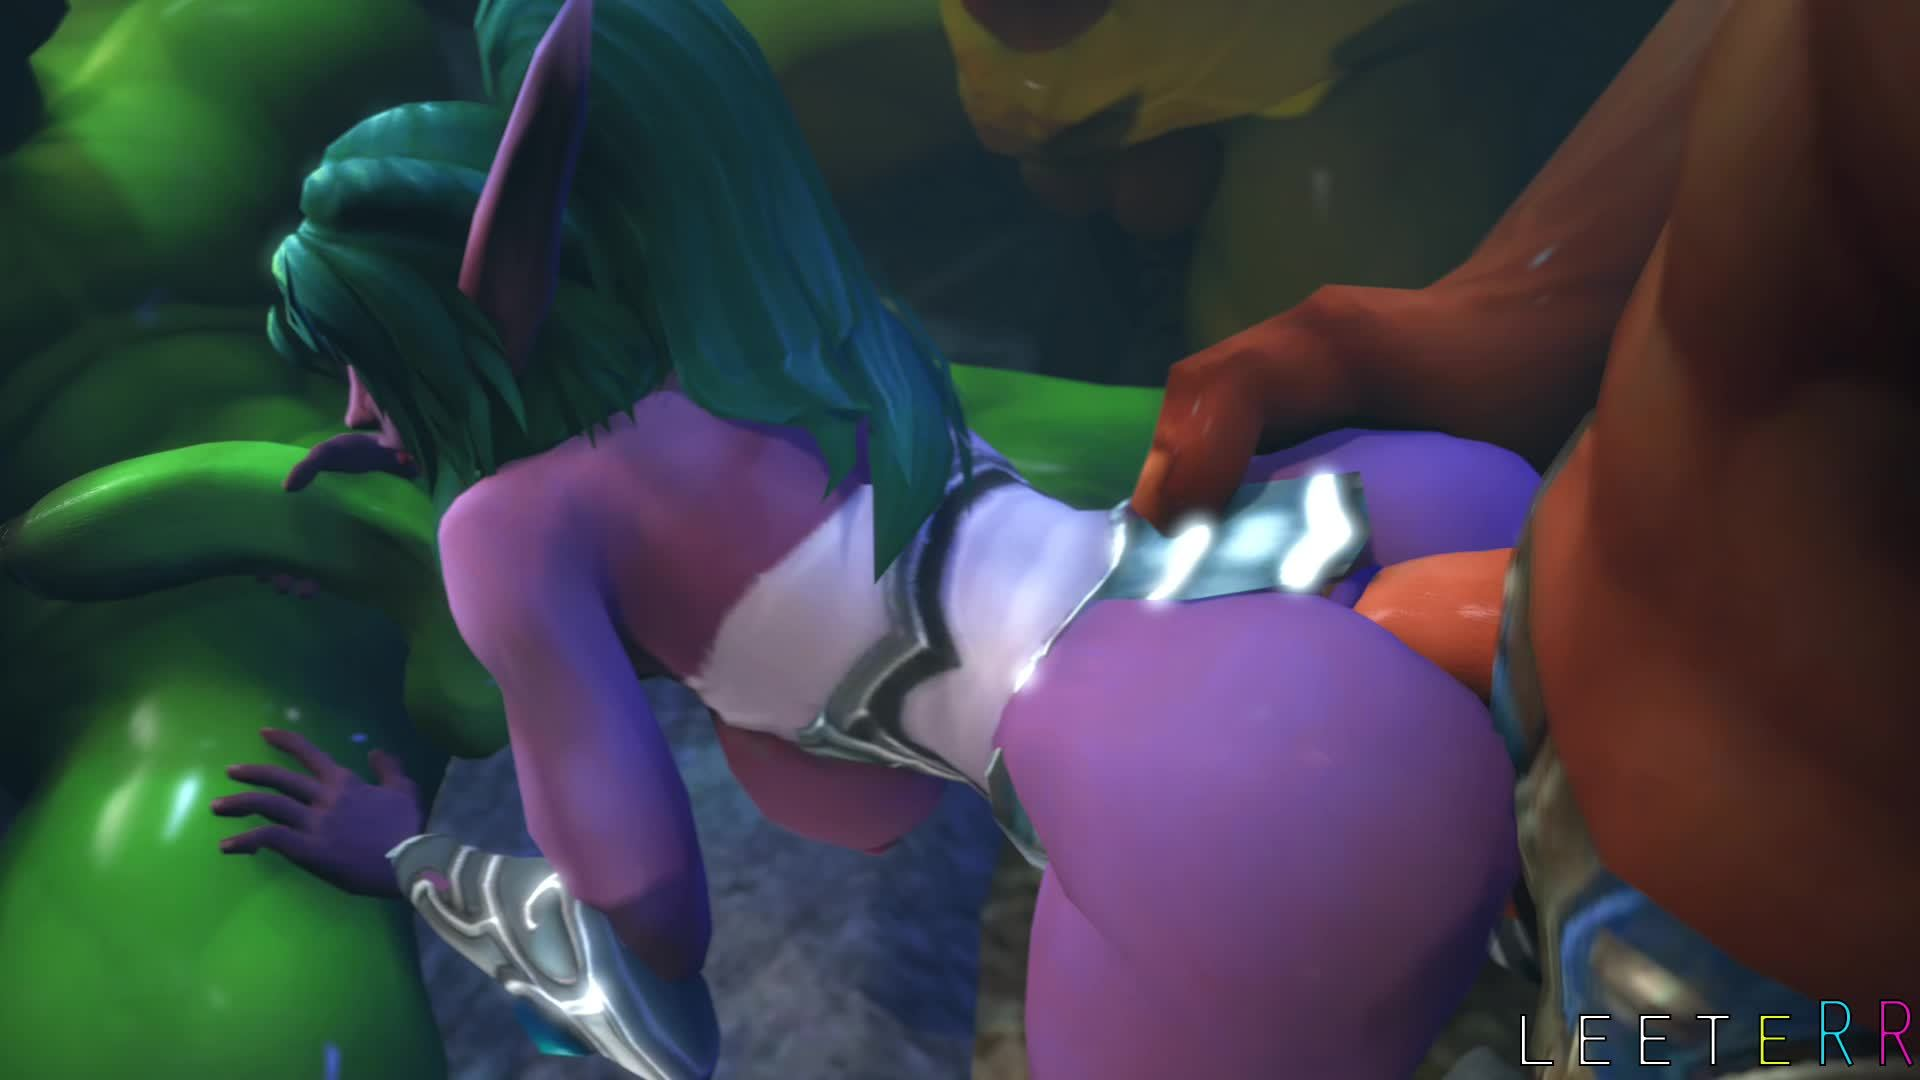 World of warcraft 3d hentai videos sexy girls